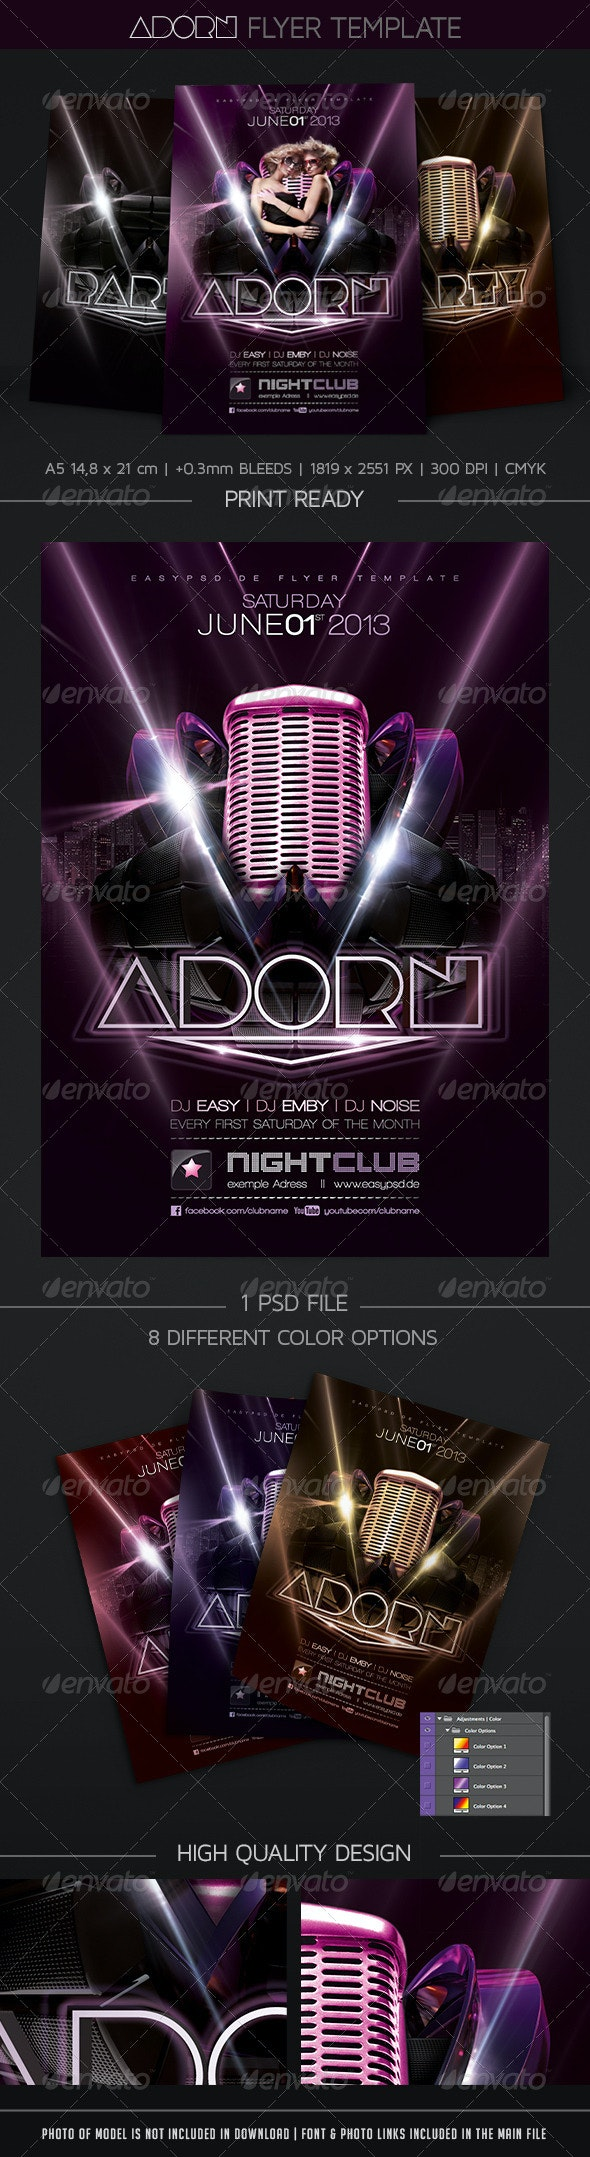 Adorn Flyer Template - Clubs & Parties Events